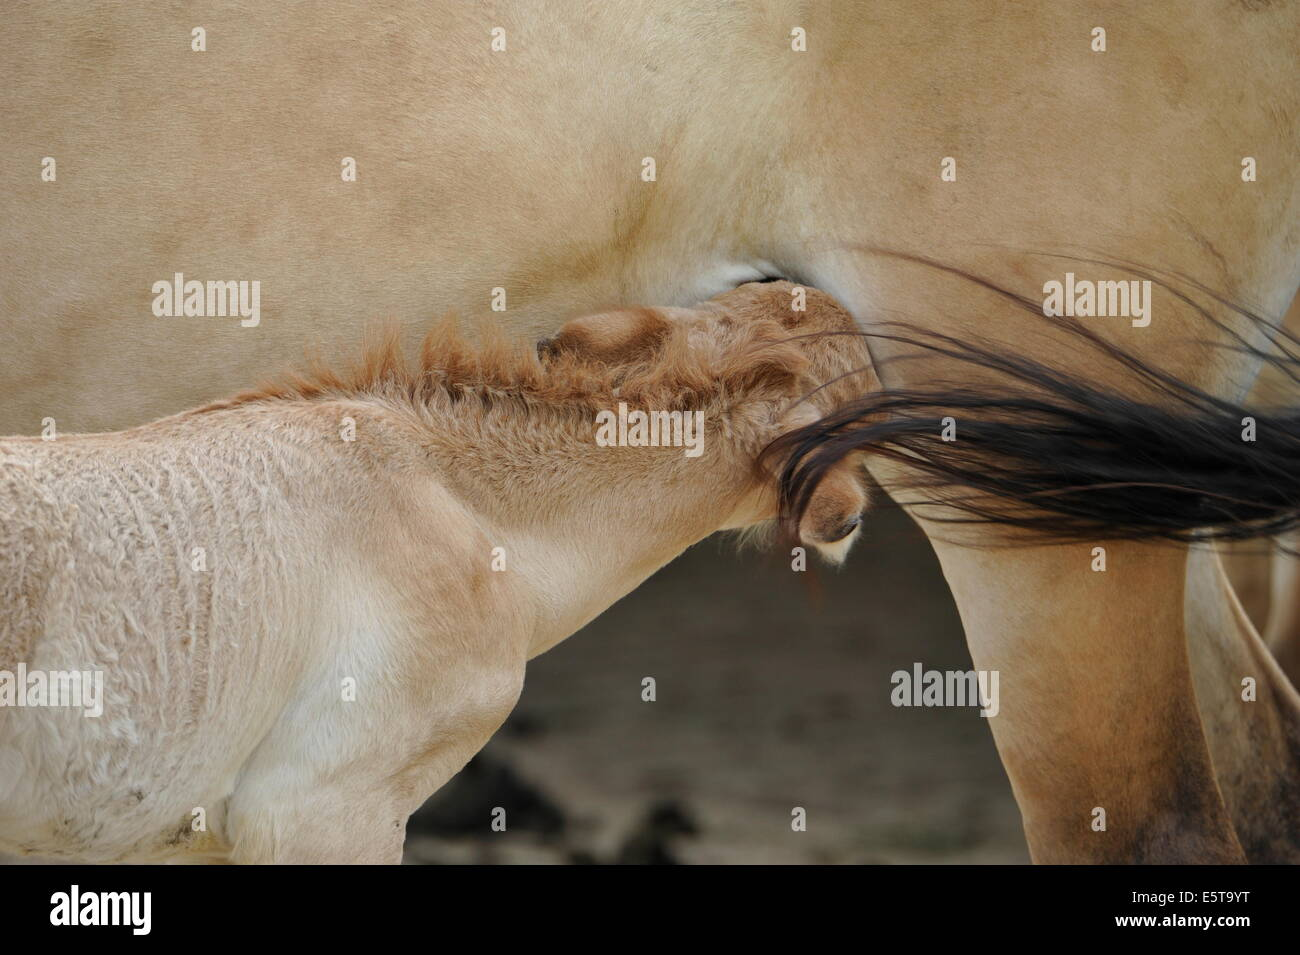 The Przewalski's horse foal suckling from mare. - Stock Image